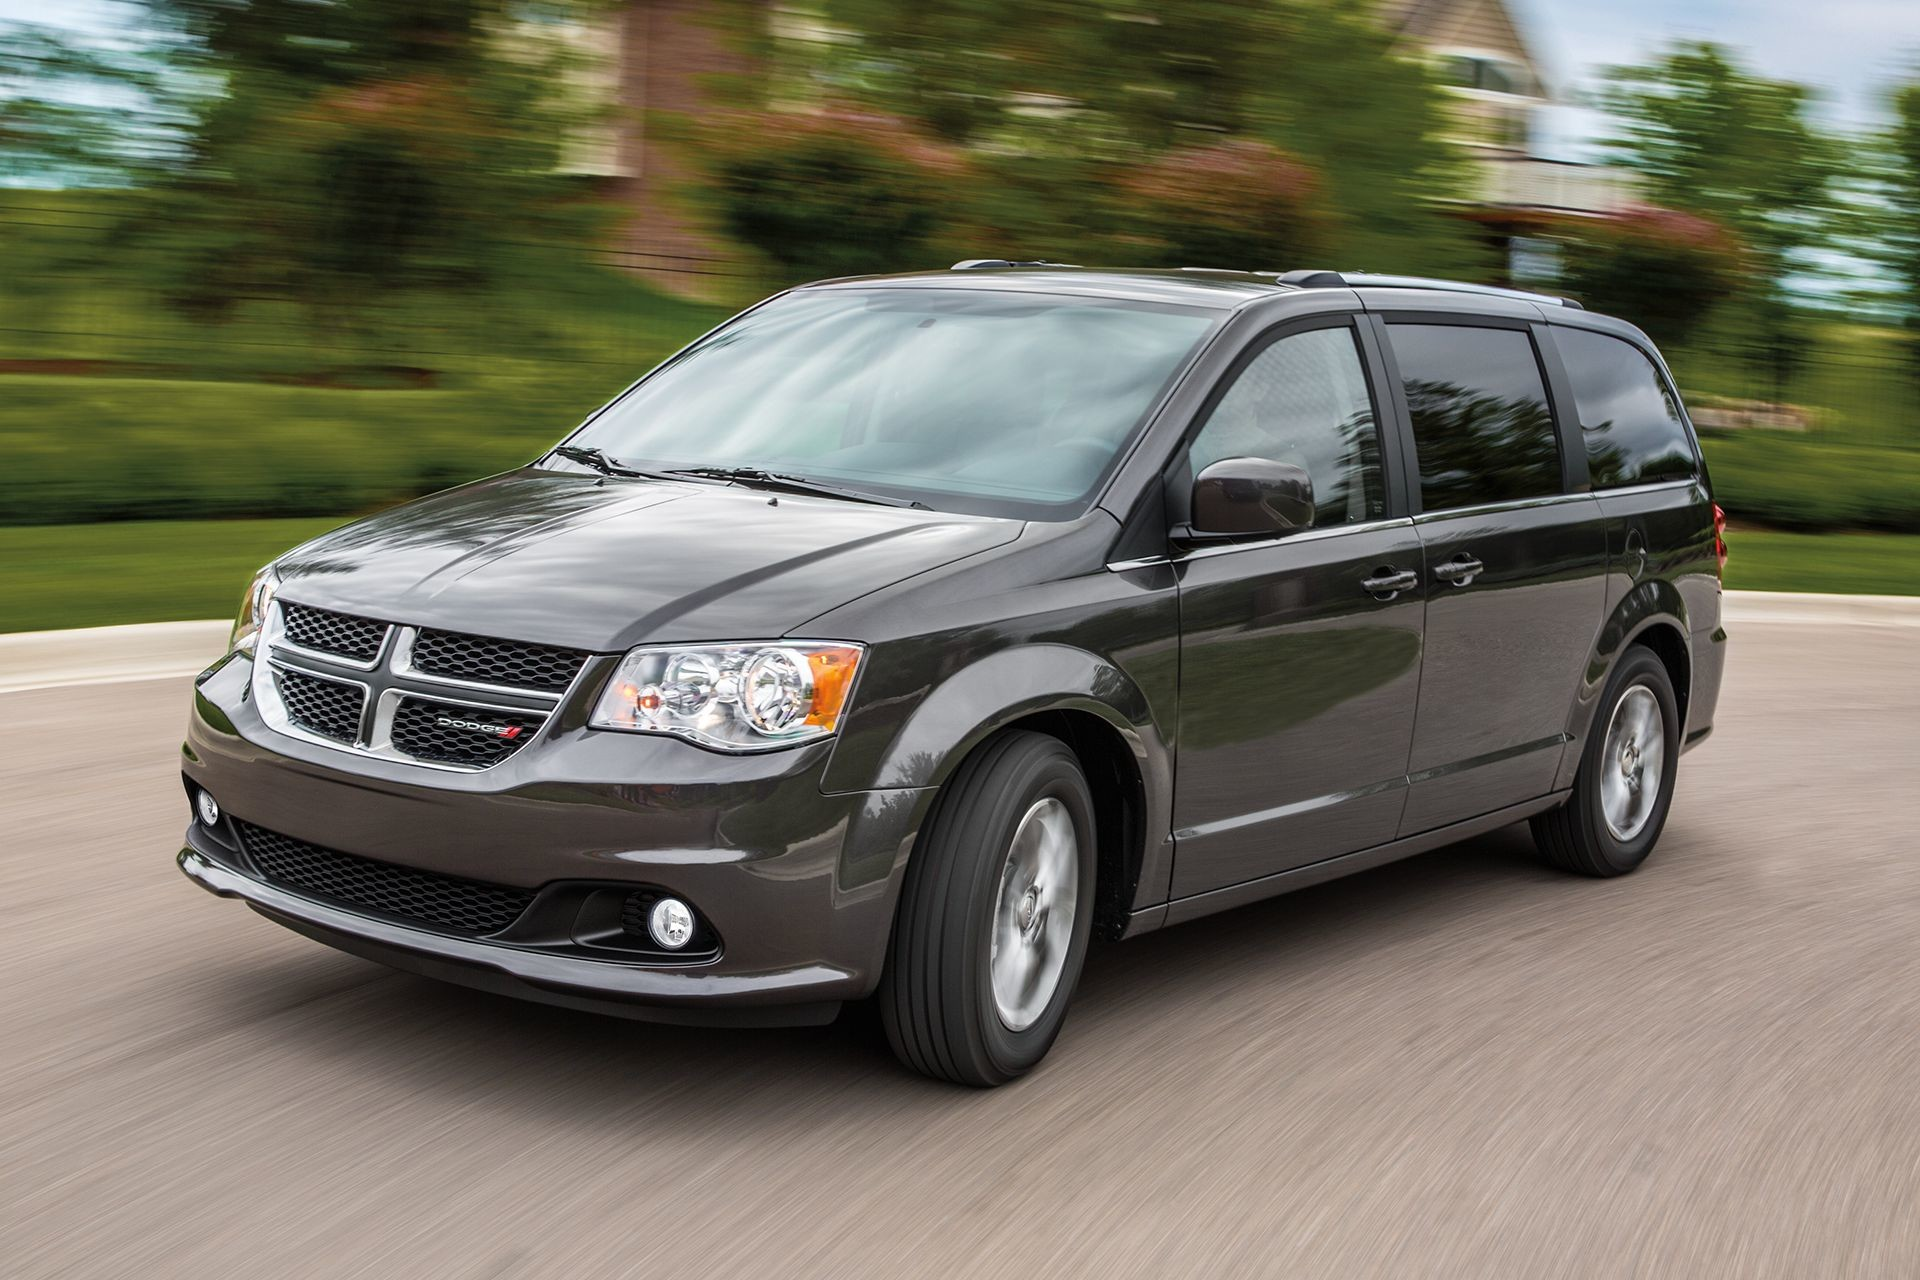 2019 Dodge Grand Caravan exterior view in dark grey driving